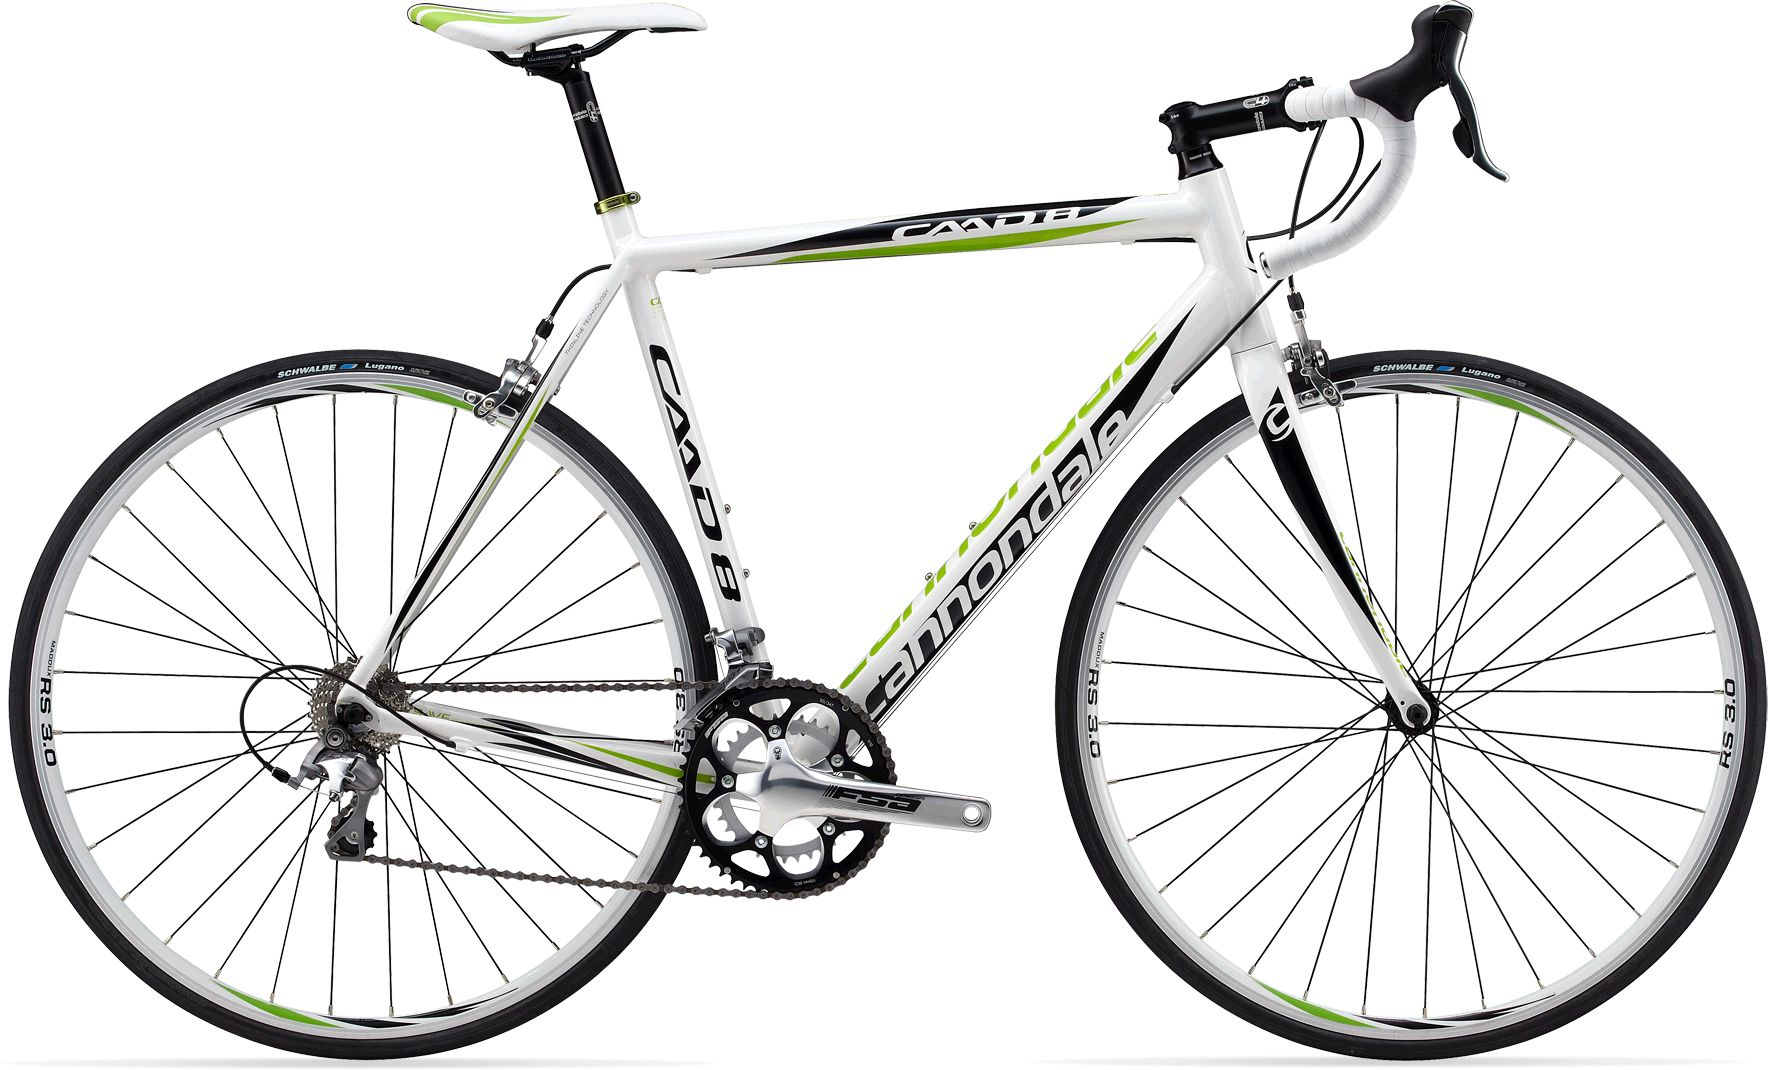 Cannondale caad 8 105 2011 pictures to pin on pinterest